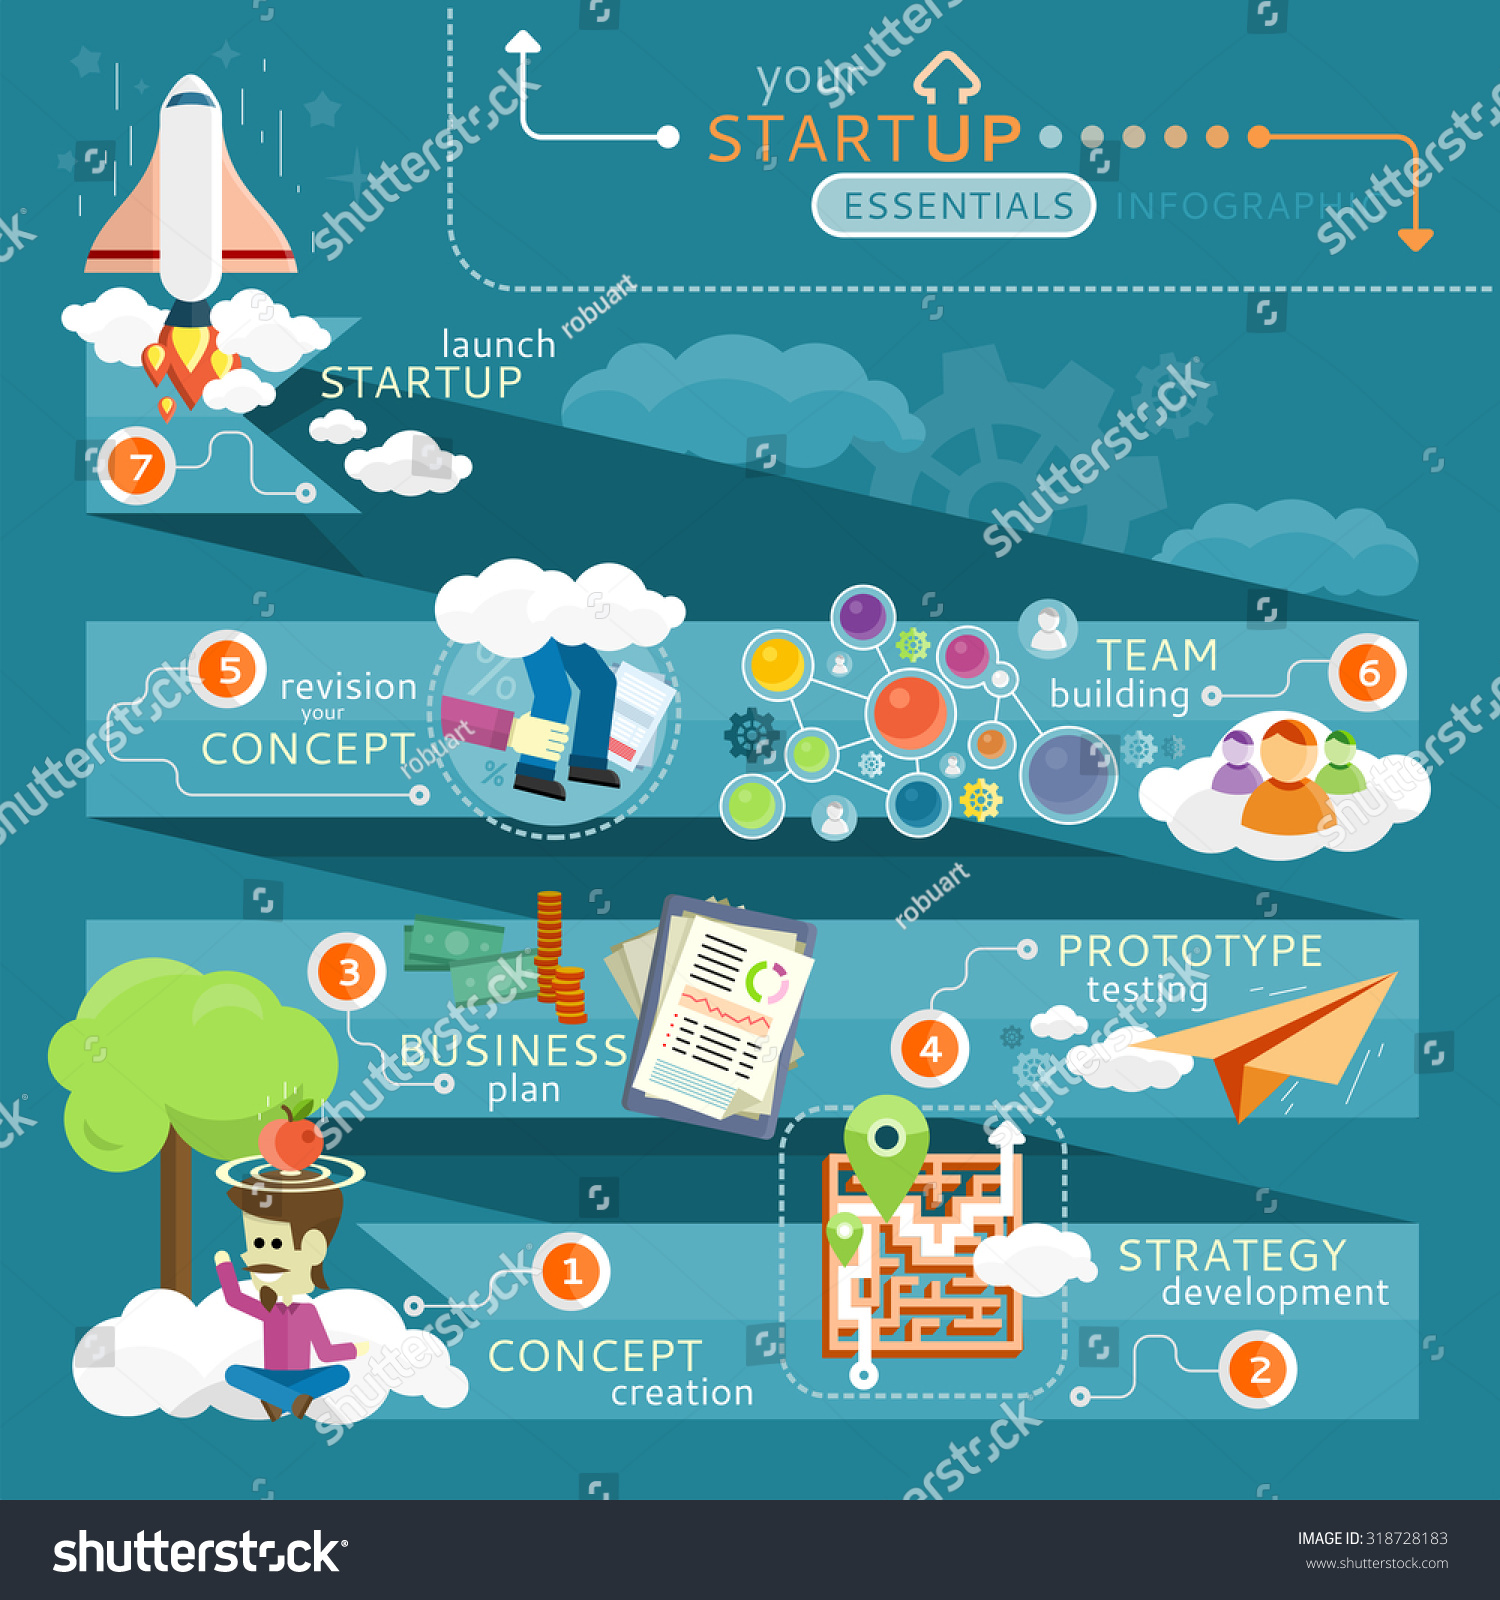 Motivational Quotes For Sports Teams: Chain Launch Startup Concept. Infographic And Team